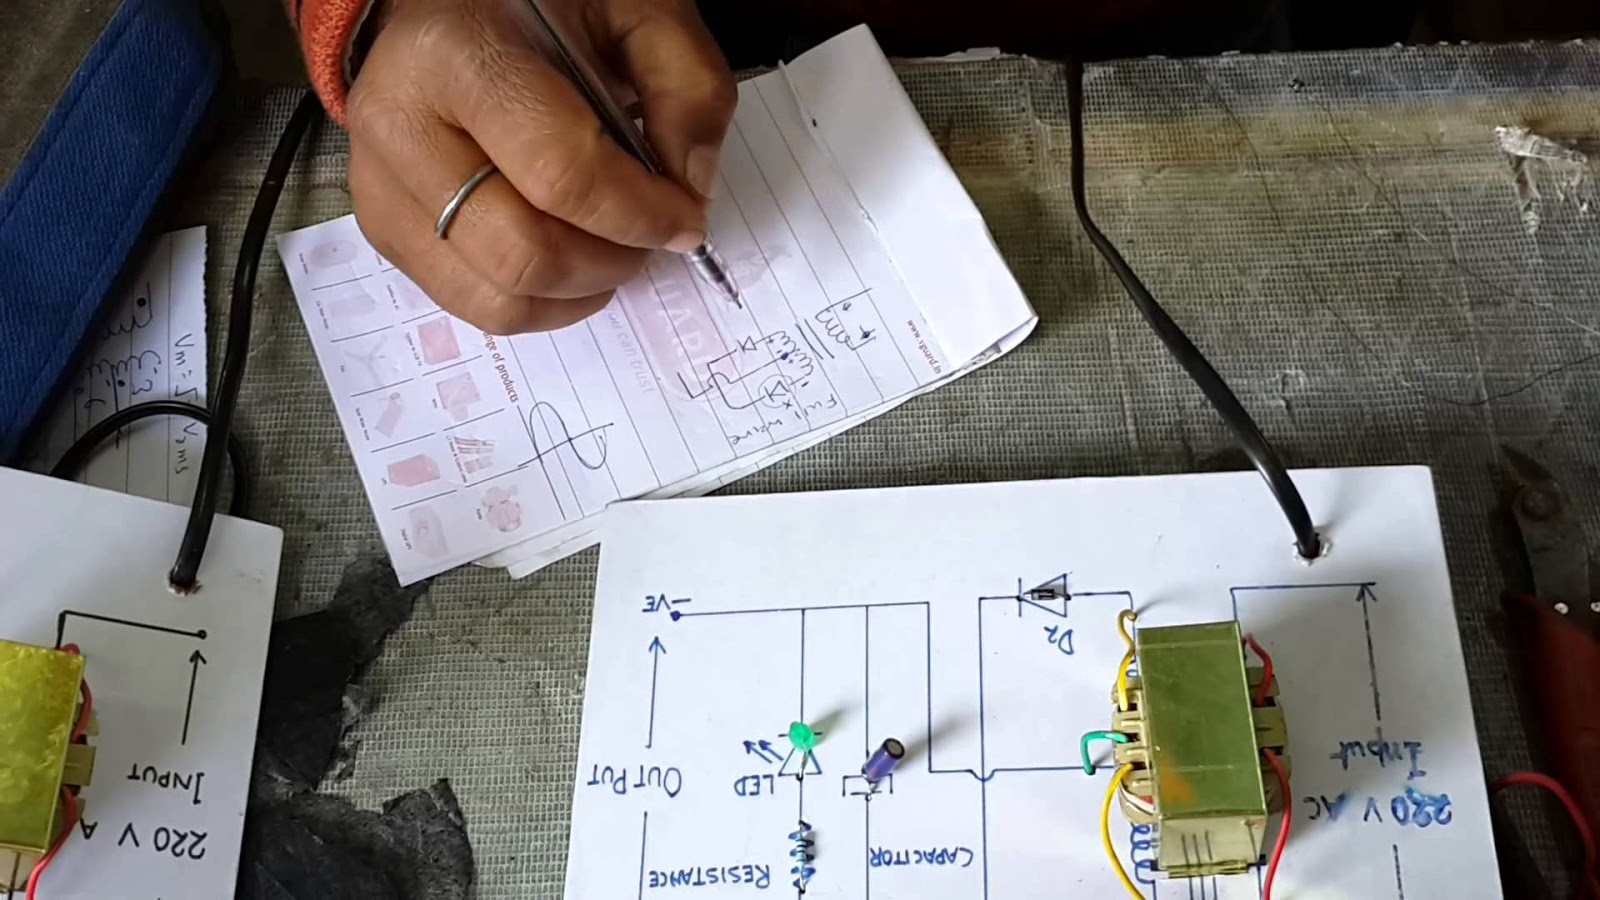 Half Wave Rectifier Circuit Working Analysis And Characteristics Diode Wiring Diagram For A Simple Is Nothing More Than Single Pn Junction Connected In Series To The Load Resistor If You Look At Above